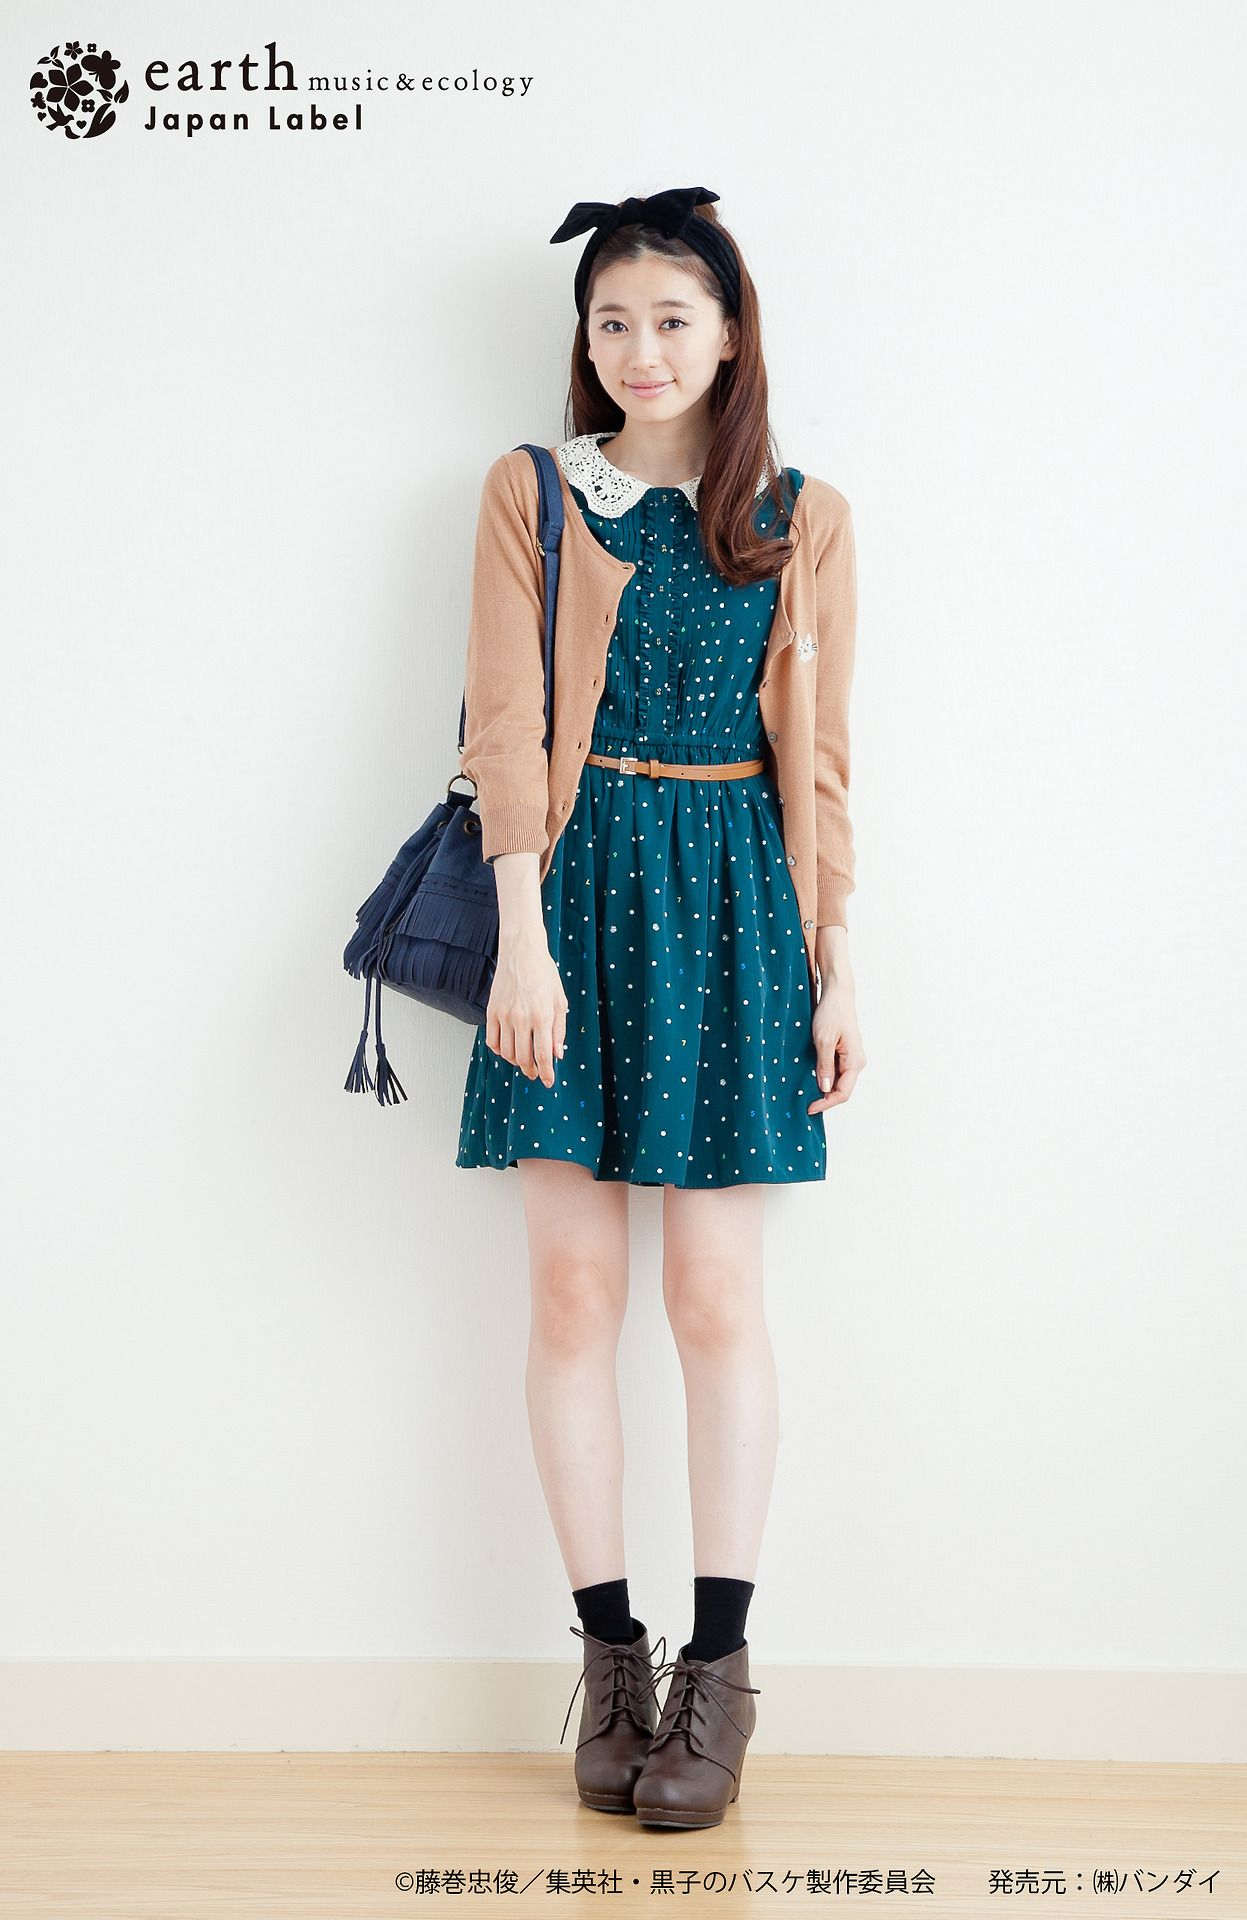 Japanese Casual Cute Fashion from Earth Music u0026 Ecology | Cute Style Inspiration | Pinterest ...